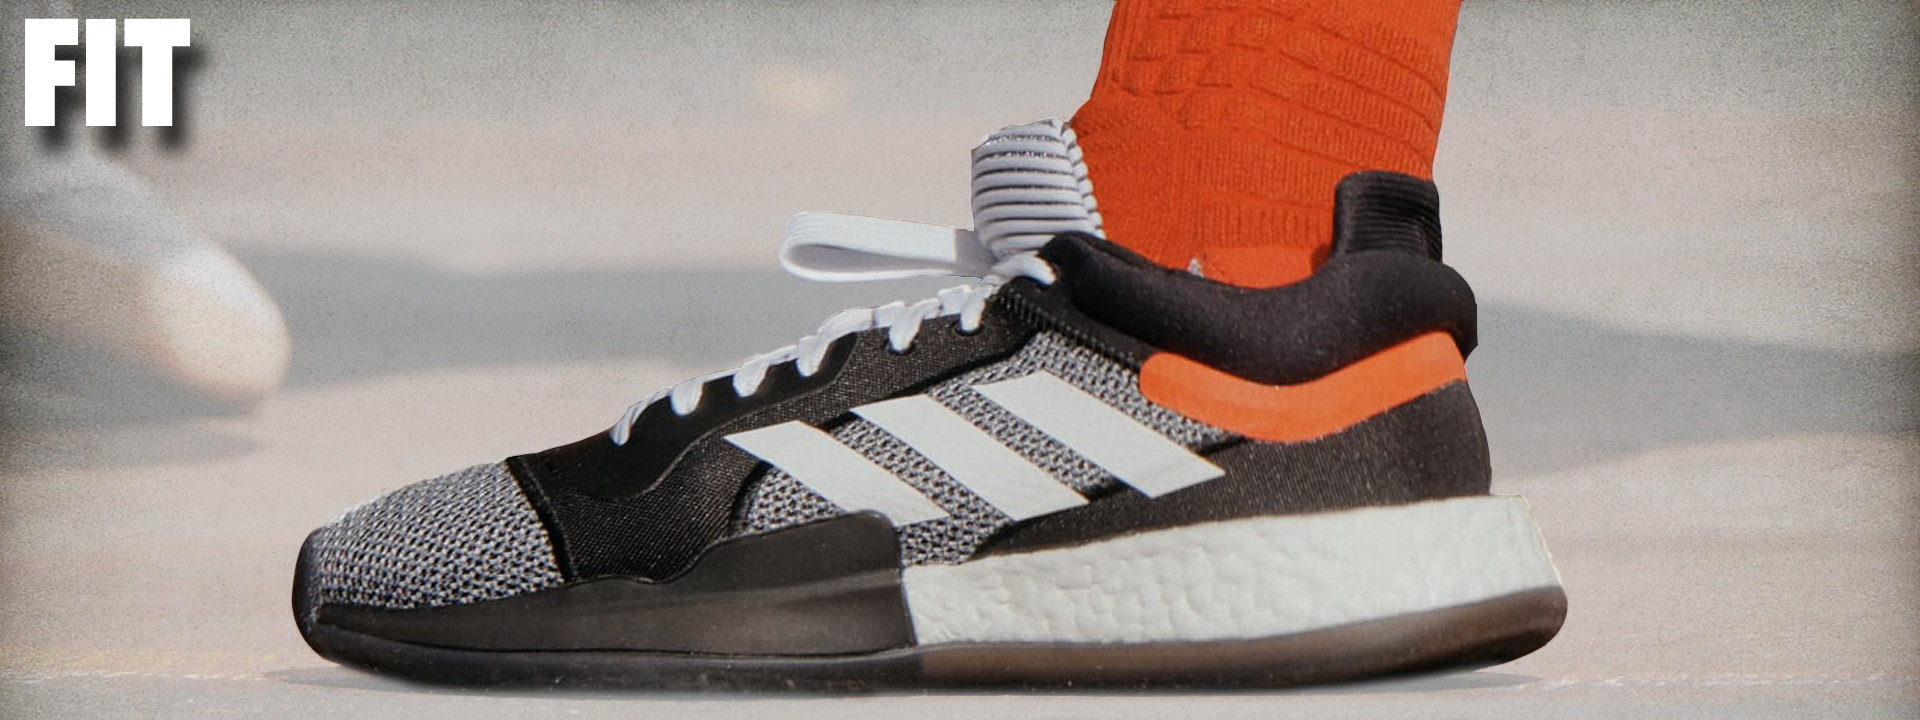 ADIDAS MARQUEE BOOST PERFORMANCE REVIEW